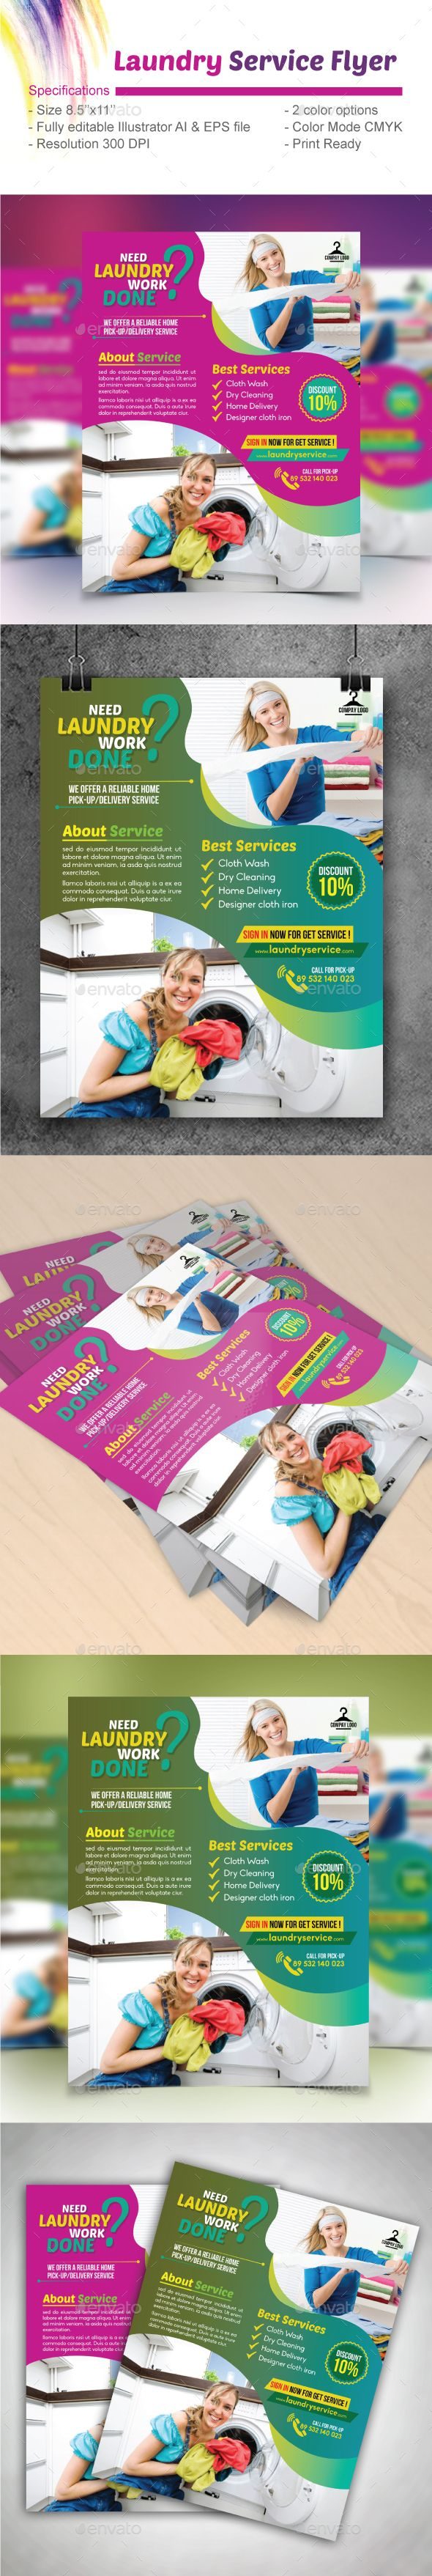 """Laundry Service Flyer by design_station Laundry Service Flyer (Editable) Specifications: - Size: 8.5""""x11�20- Bleed: .125\""""- Two color variations (Magenta & Green) - Full"""